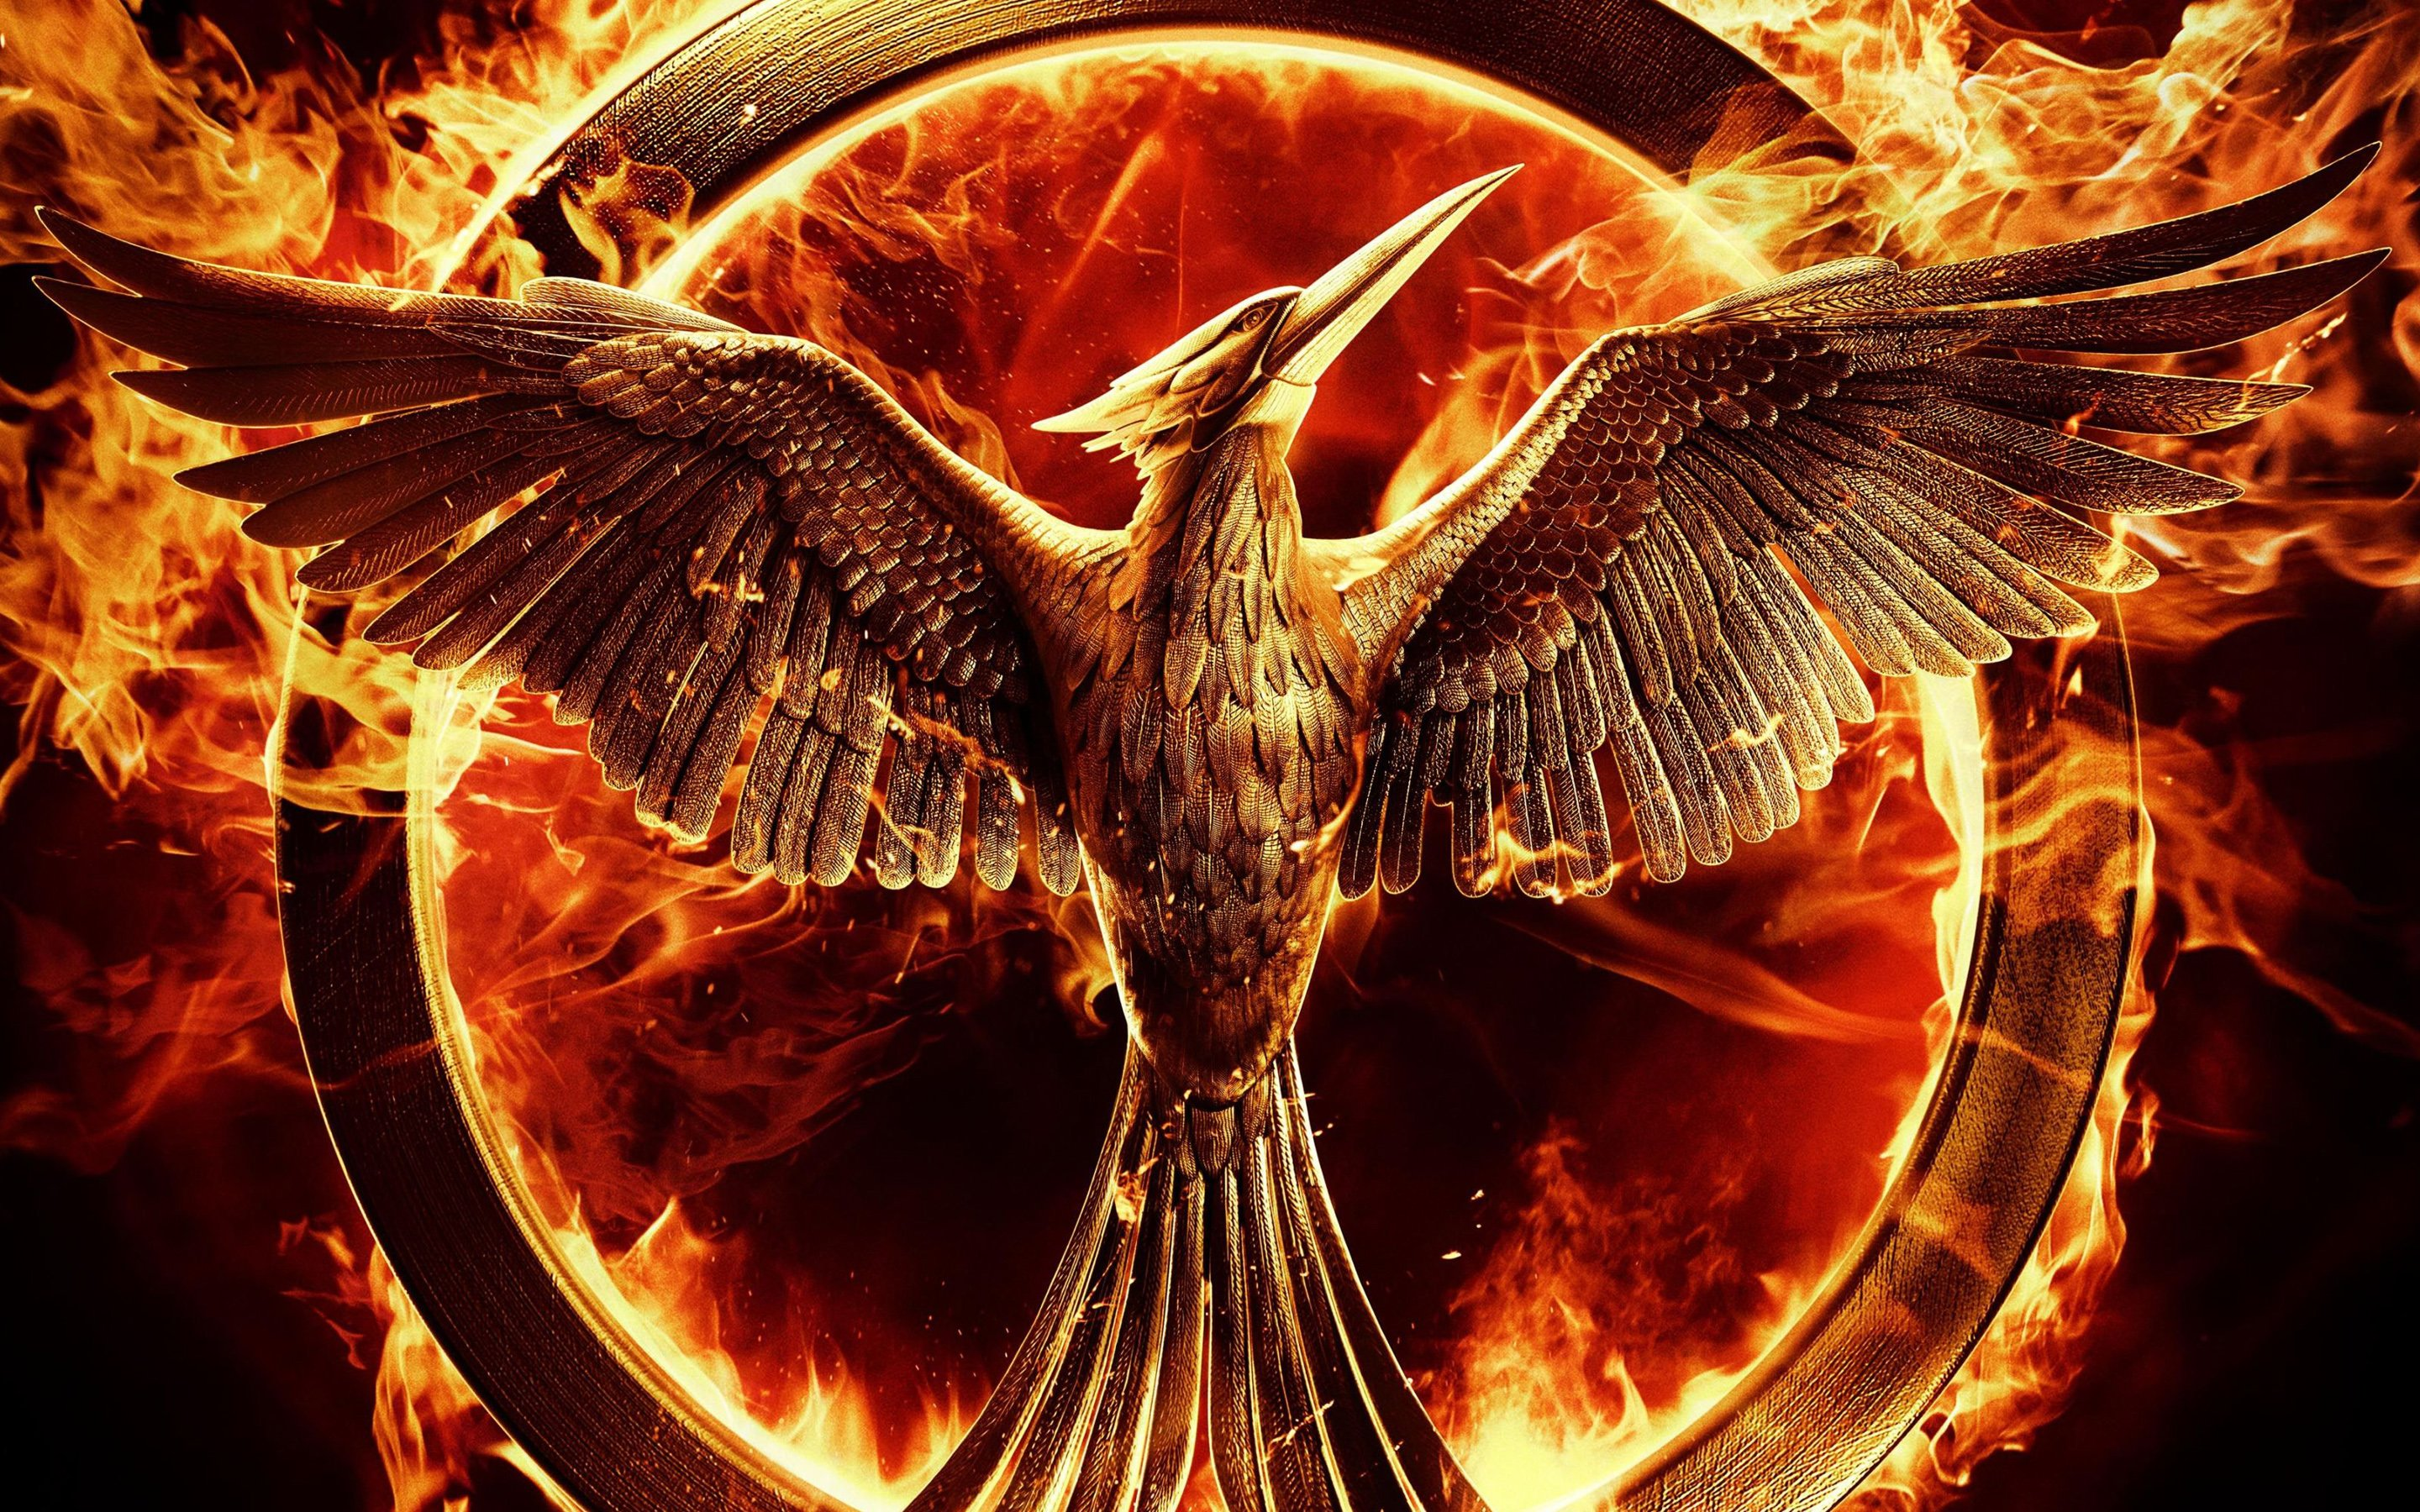 The Hunger Games Mockingjay Wallpapers HD Wallpapers 2880x1800